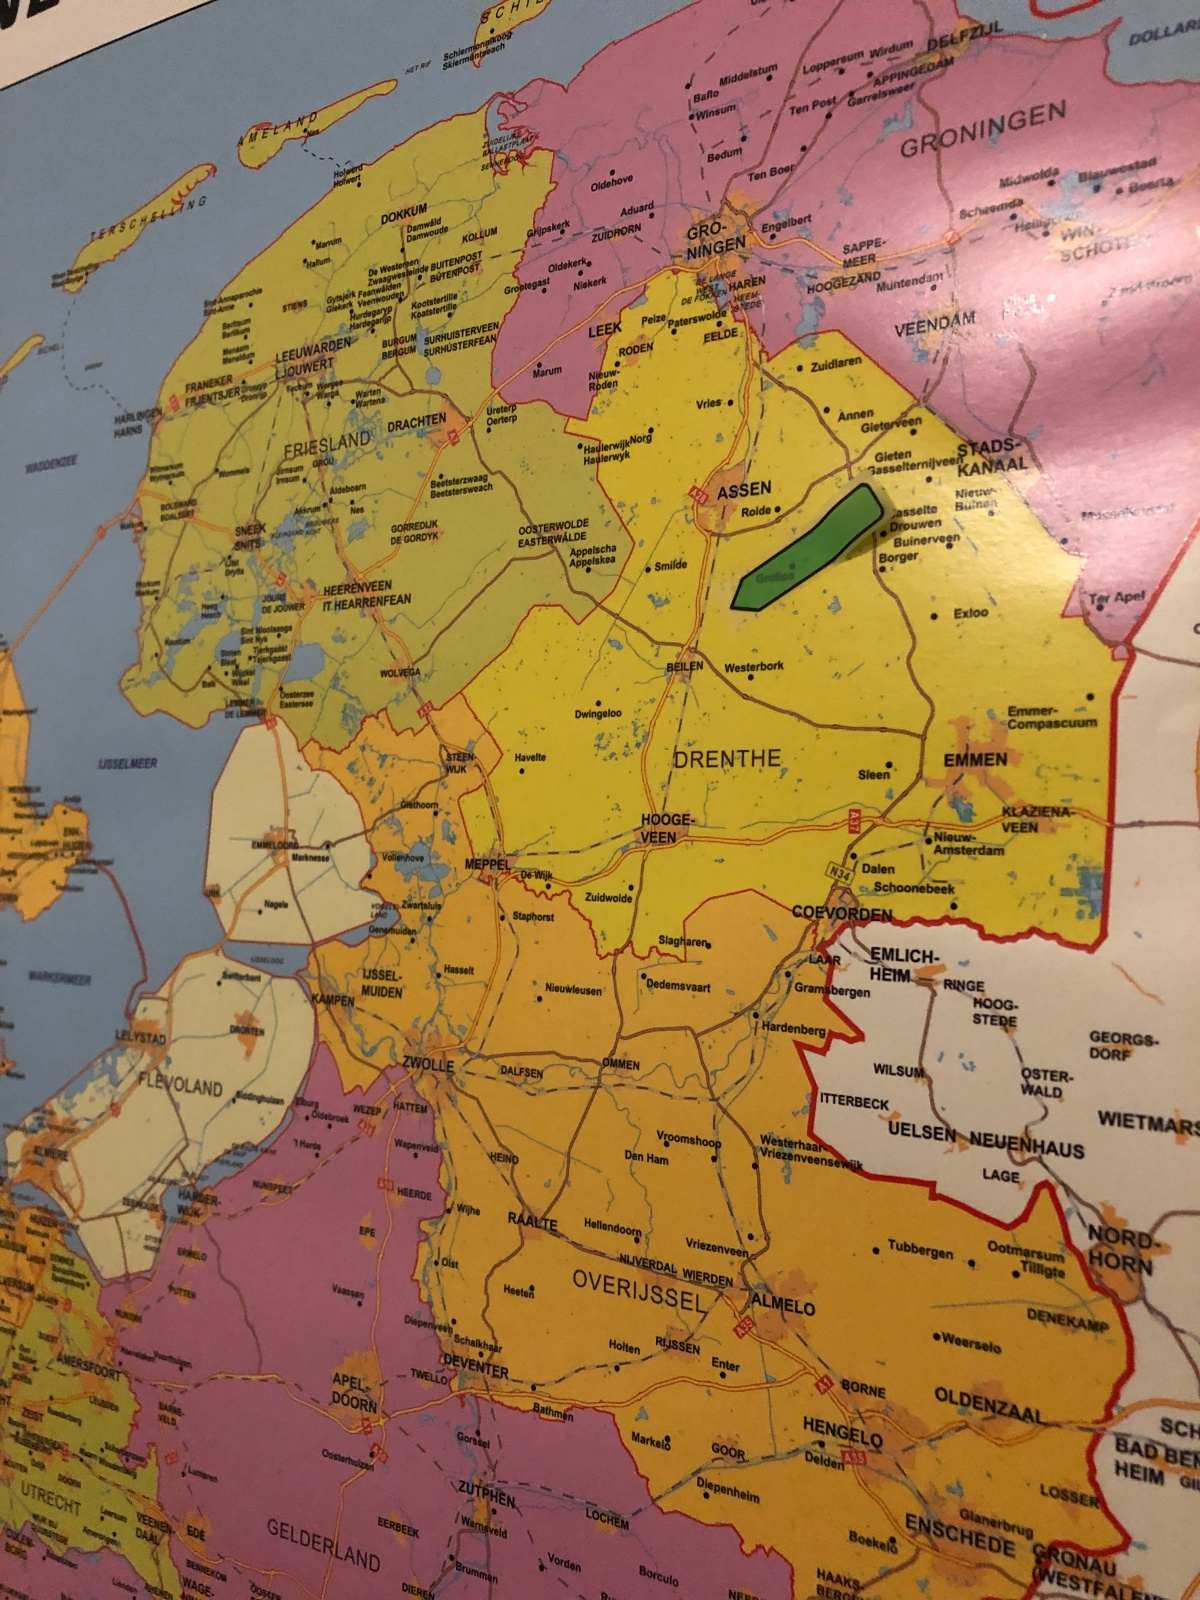 Our projected destination in Drenthe